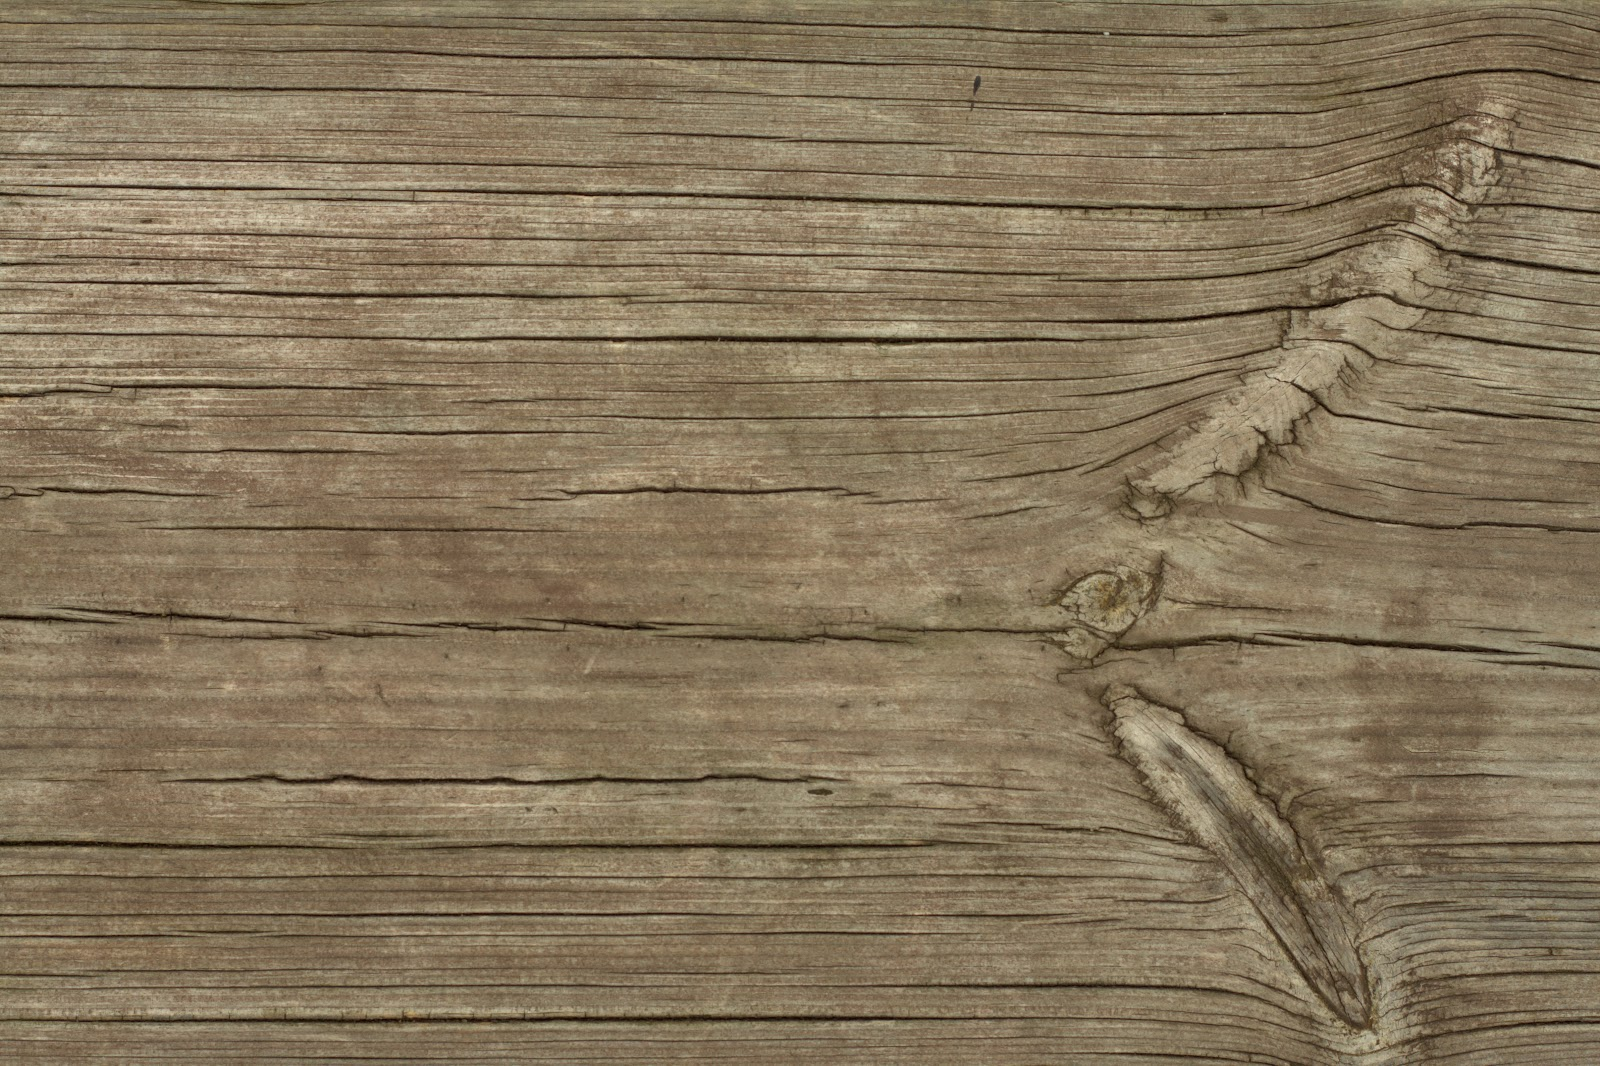 High Resolution Textures Wood 8 Dry Cracked Bench Plank